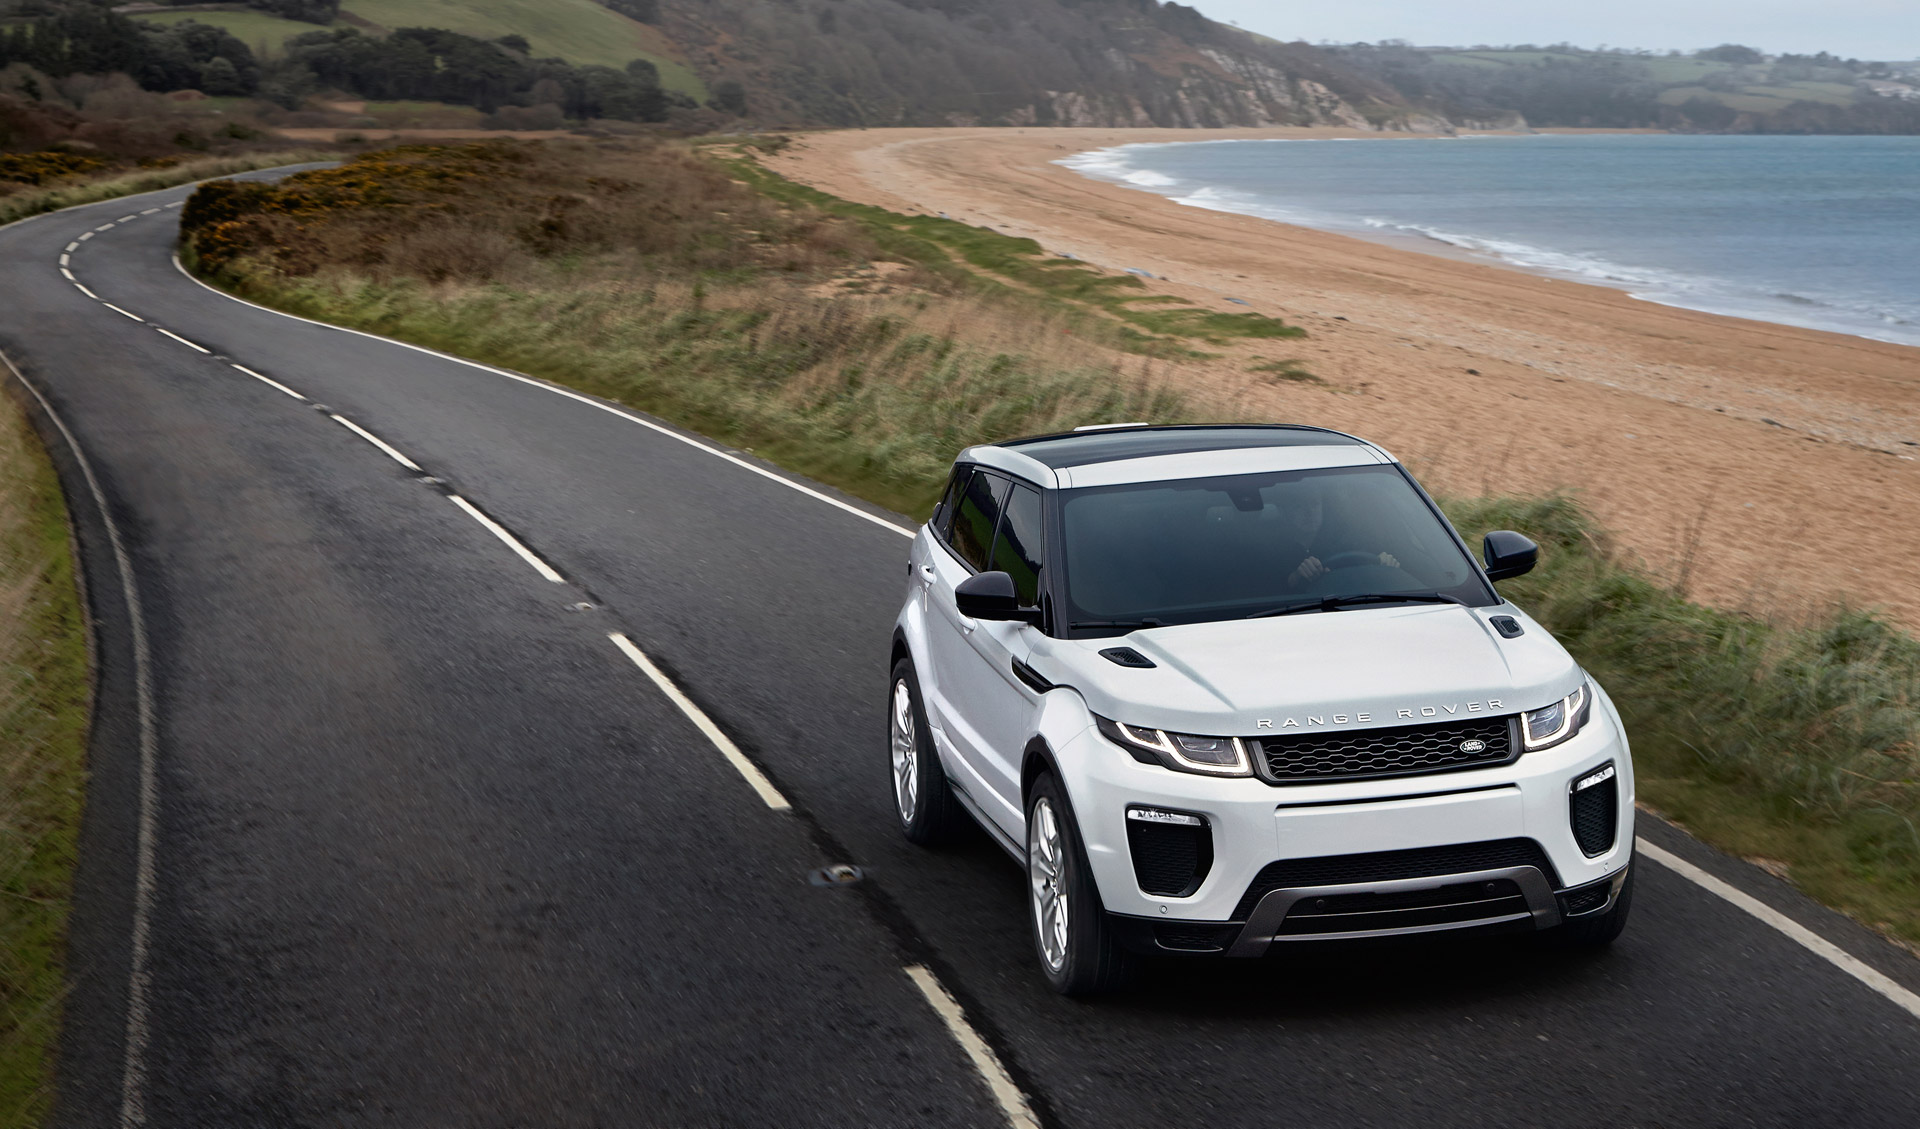 2016 Land Rover Range Rover Evoque Revealed With LED Headlights